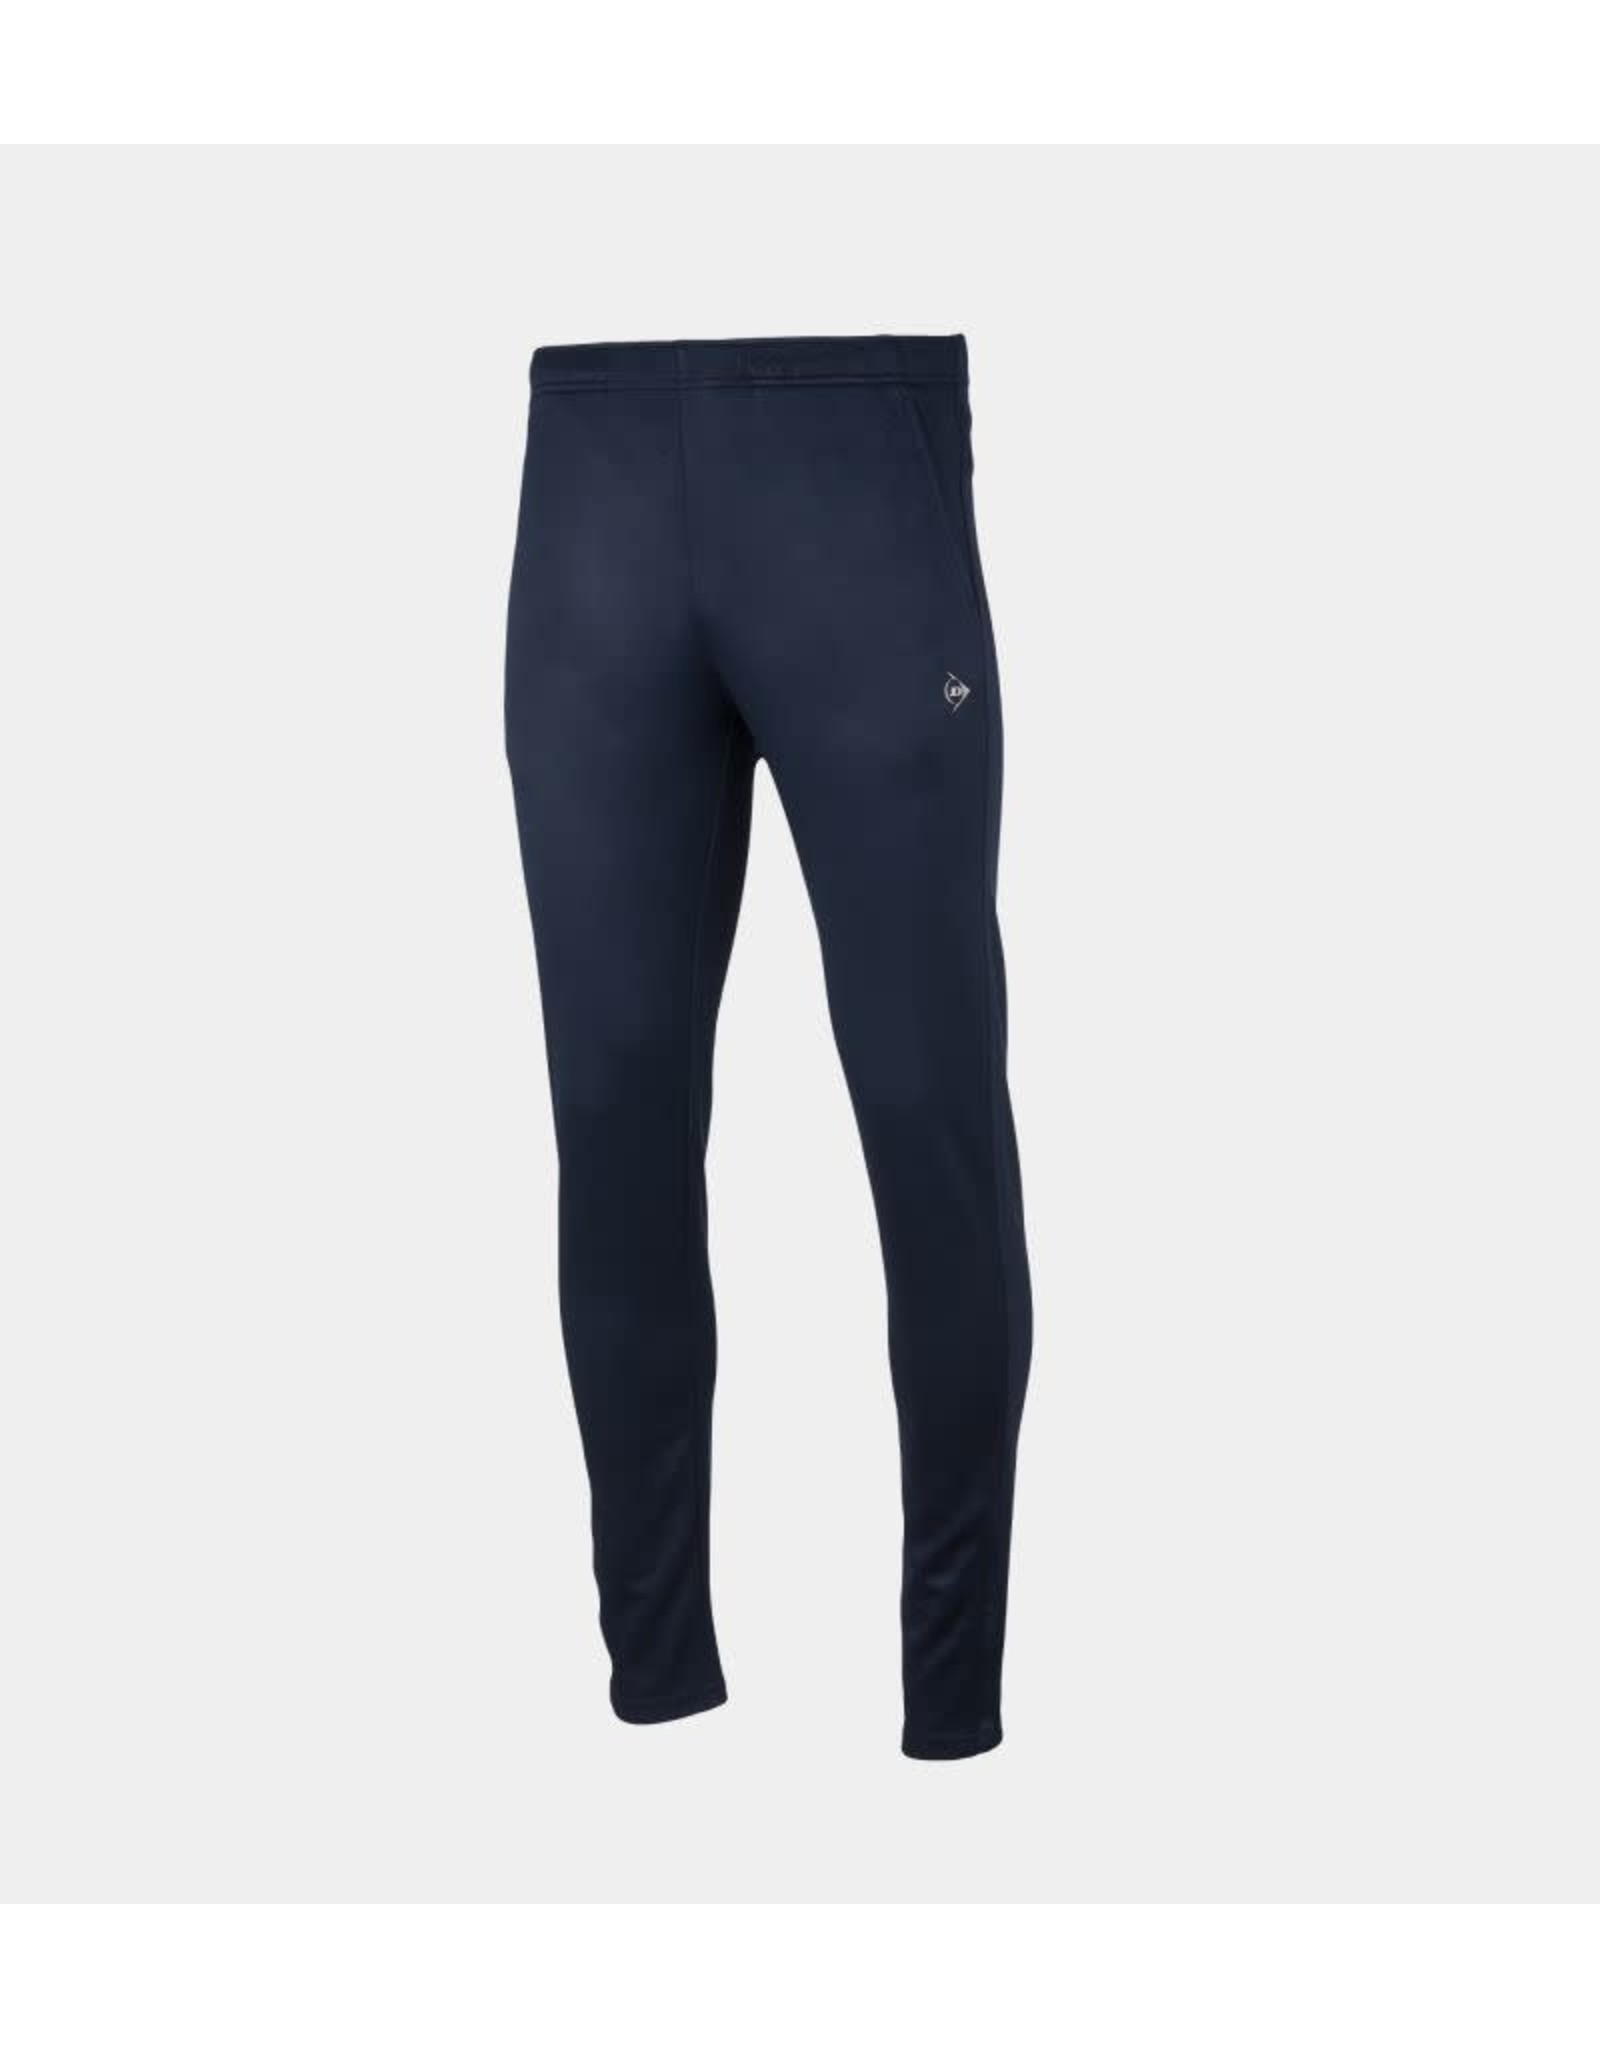 Dunlop D AC CLUB LDS KNITTED PANT